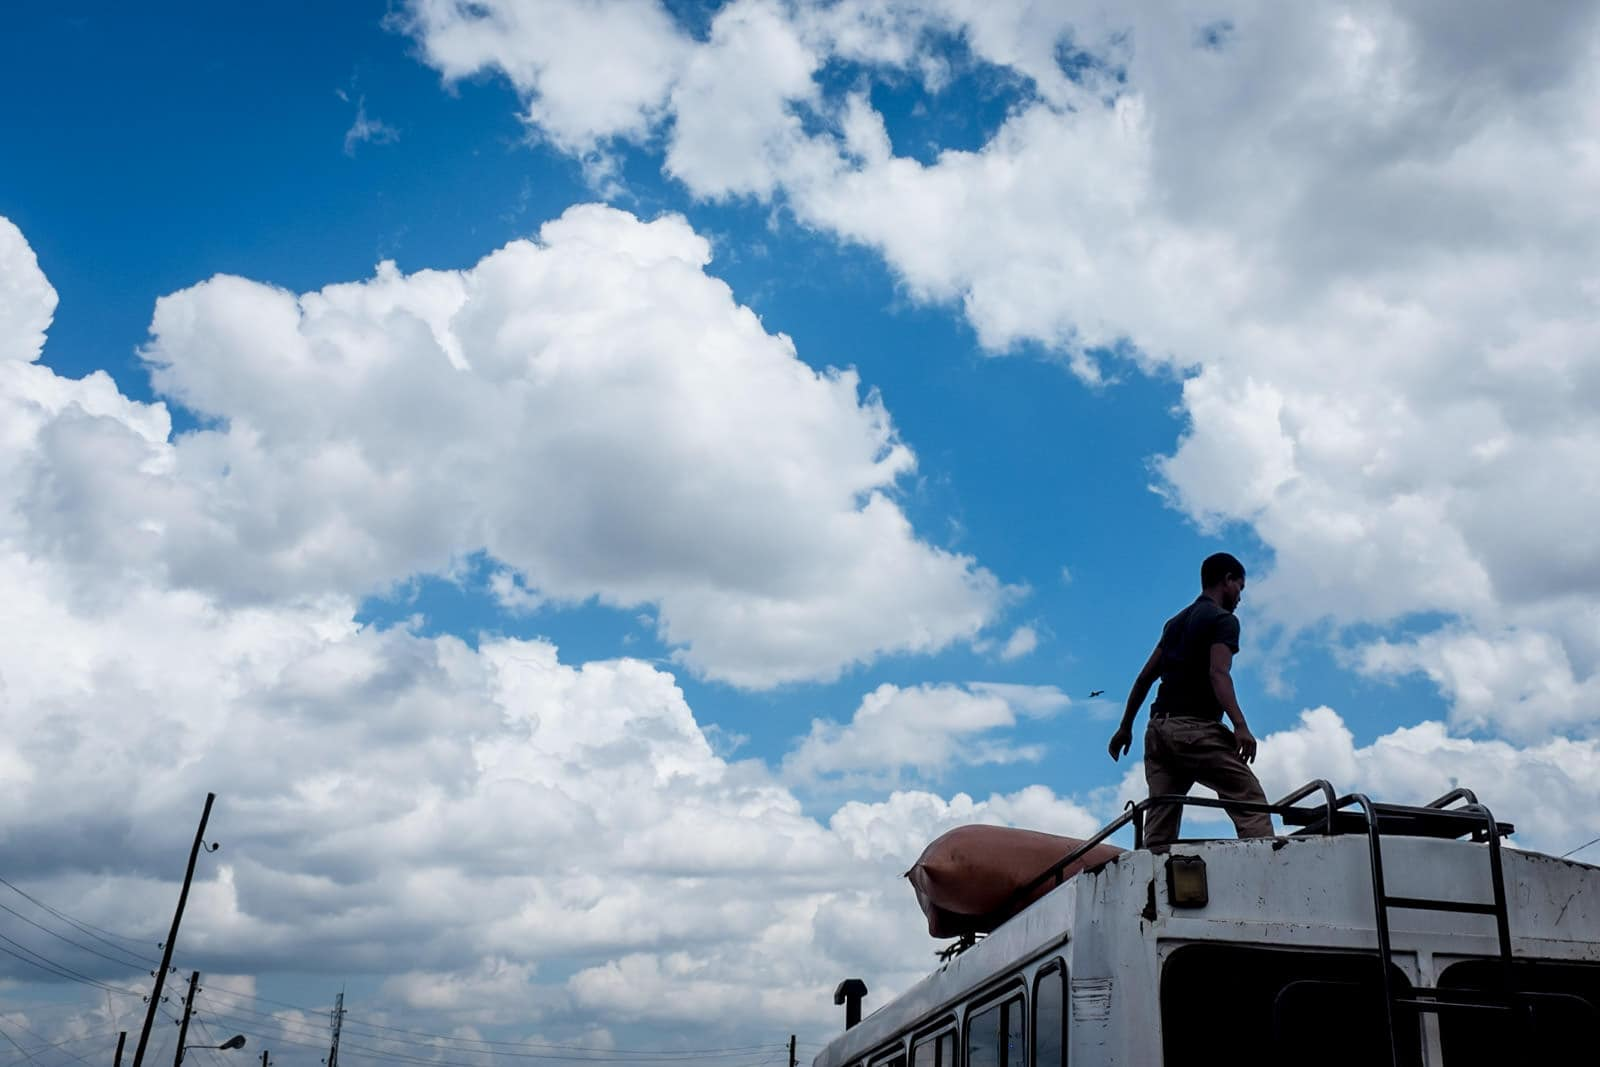 Addis Ababa street photography in Ethiopia with man on top of bus in front of clouds